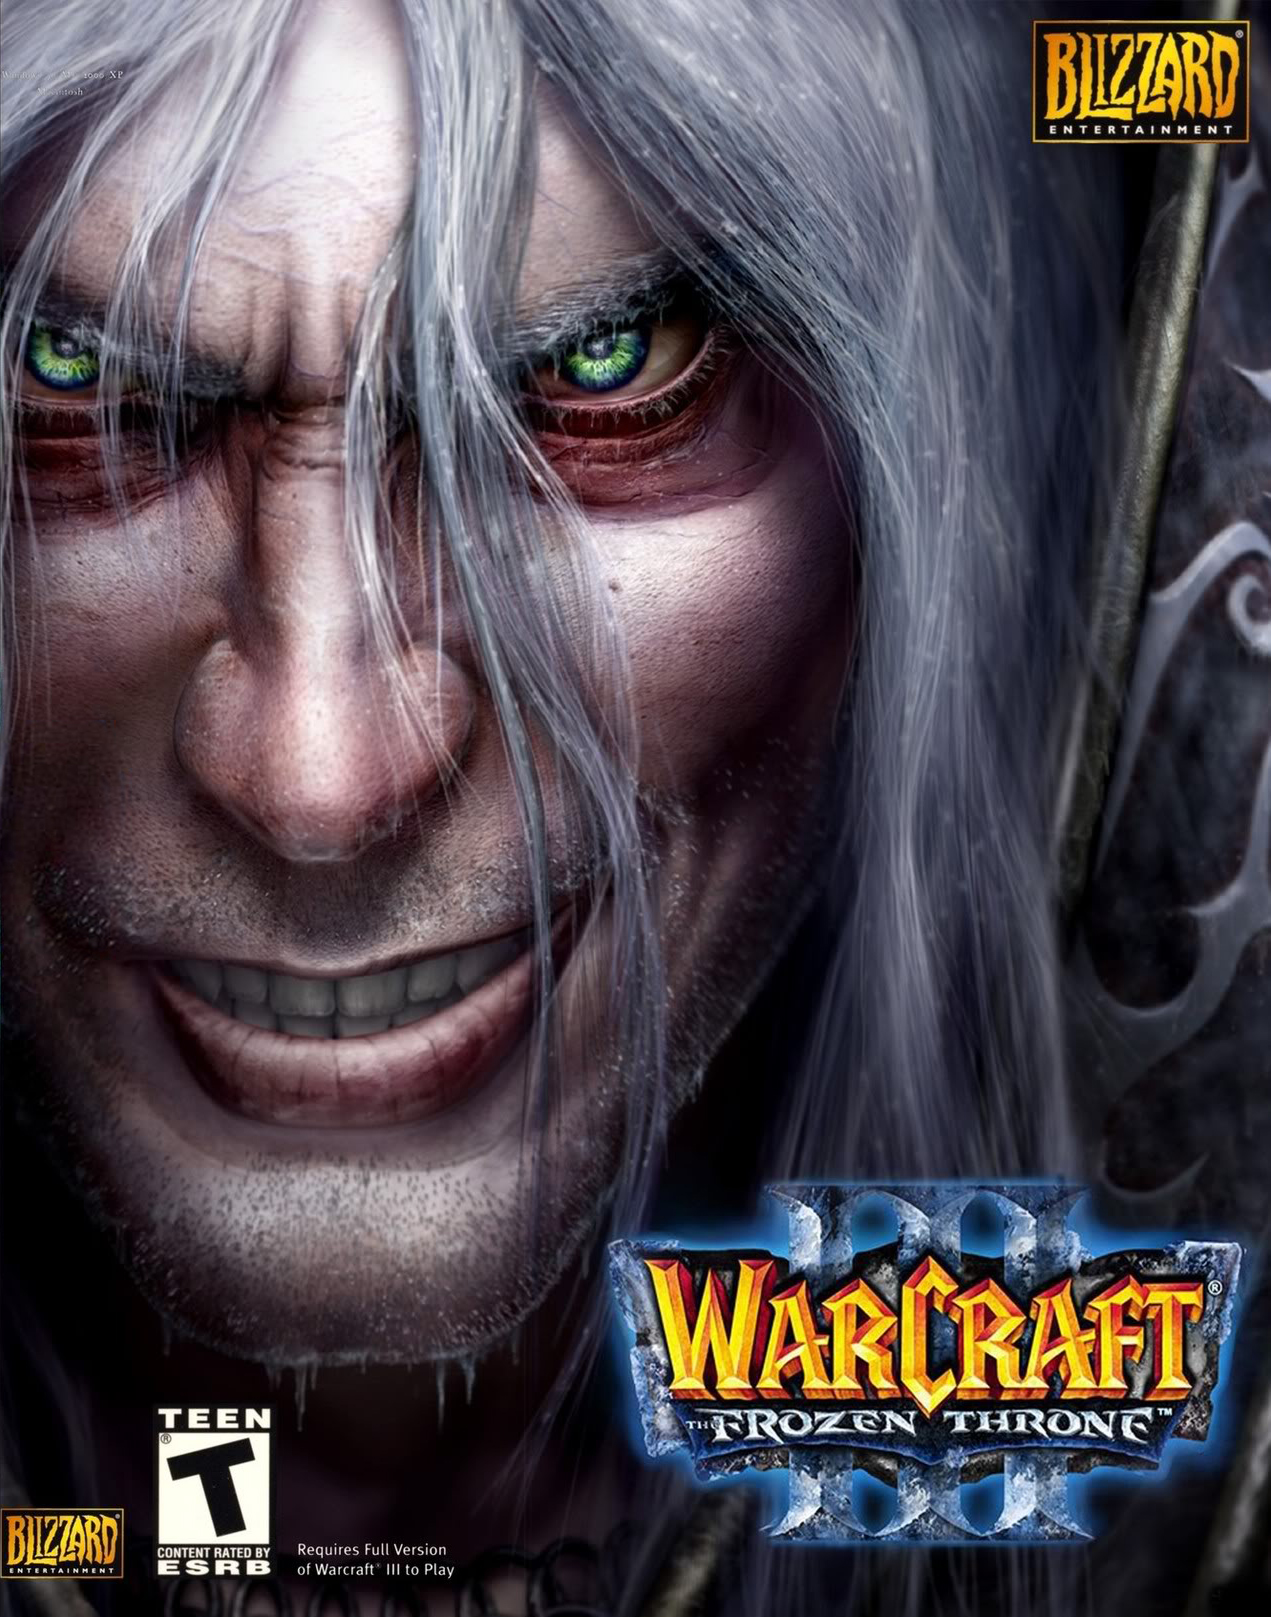 Warcraft 3 Frozen Throne [1.26a +batlnet] (2011) PC